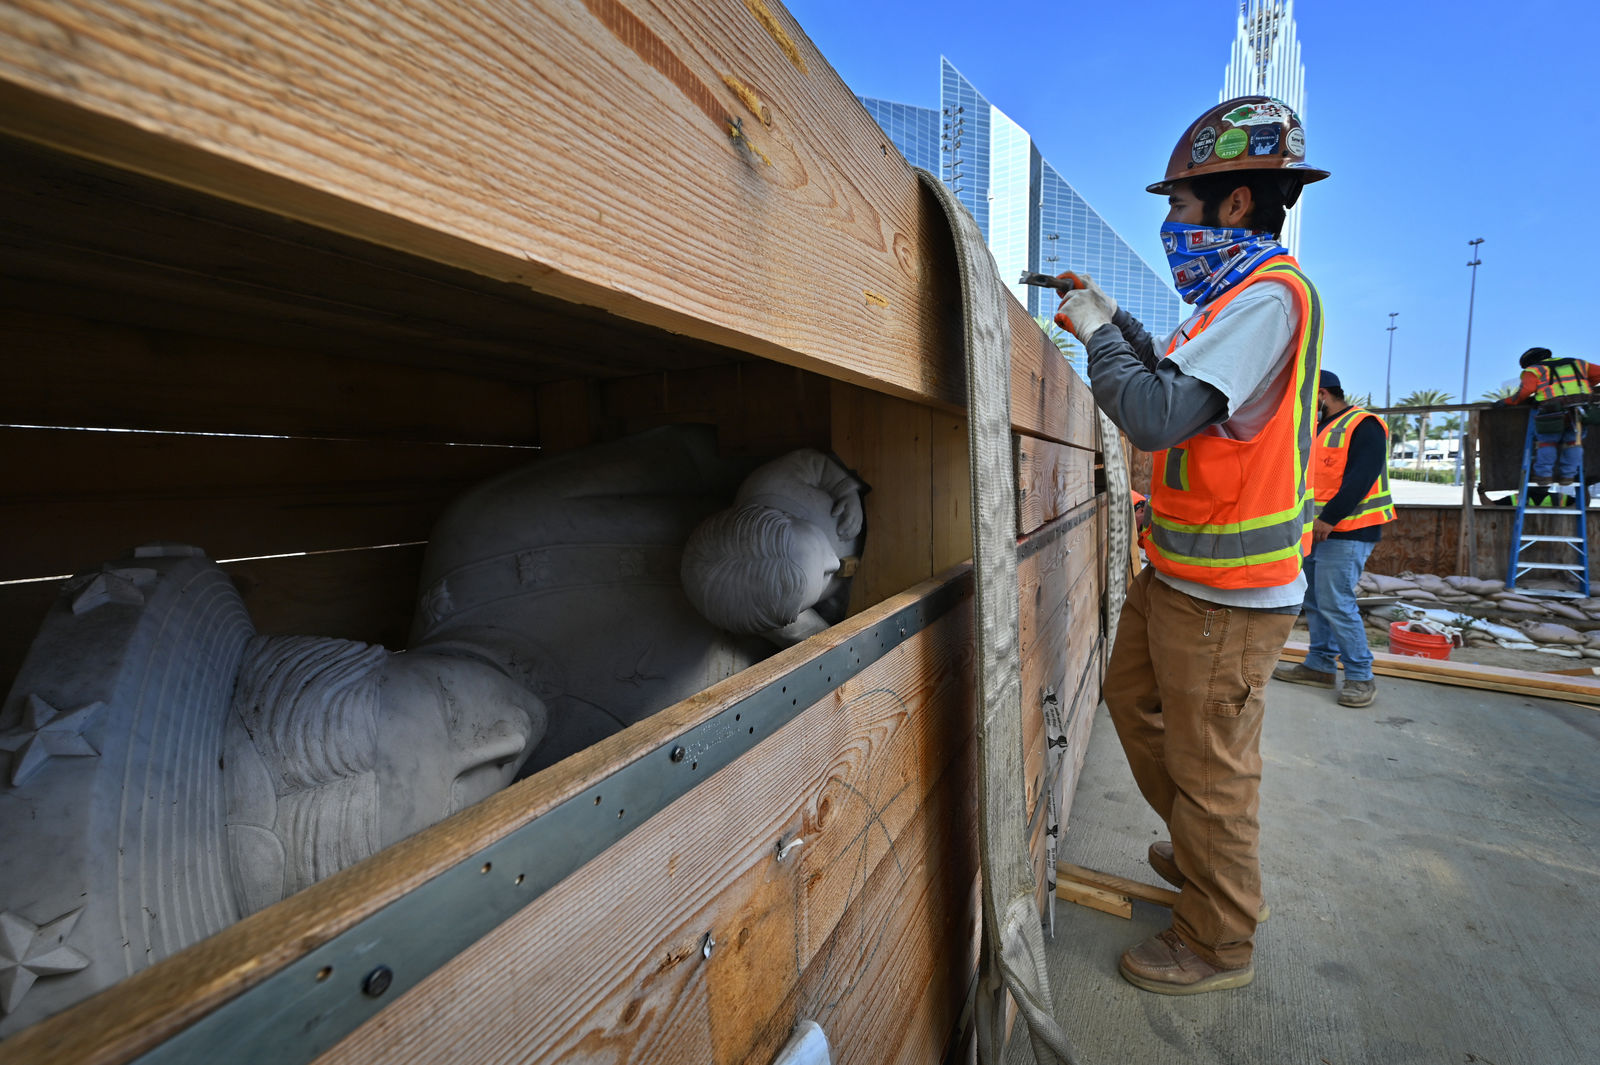 Our Lady of La Vang statue is unboxed for installation at Christ Cathedral. Photo courtesy Diocese of Orange. Note: Photo taken during construction.